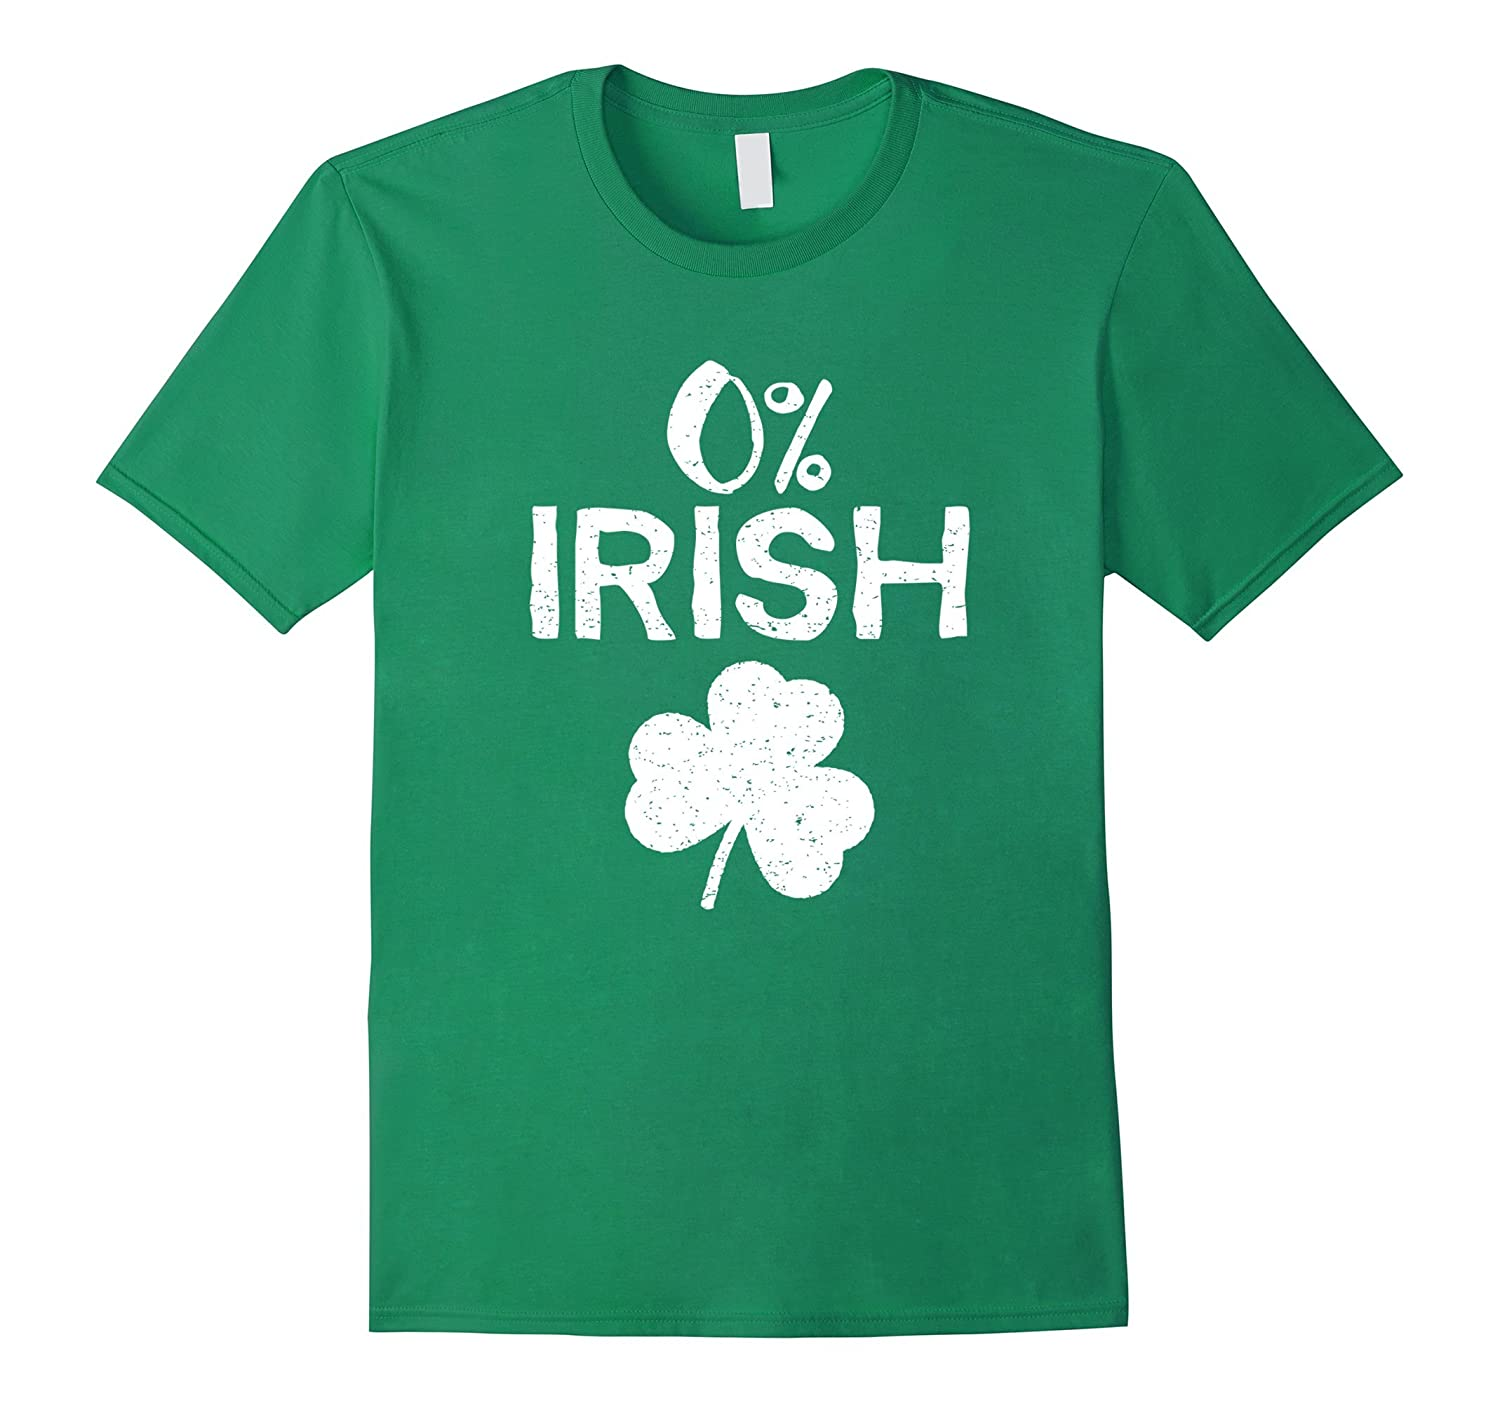 0 Irish - Funny St Patricks Day T-Shirt-TD